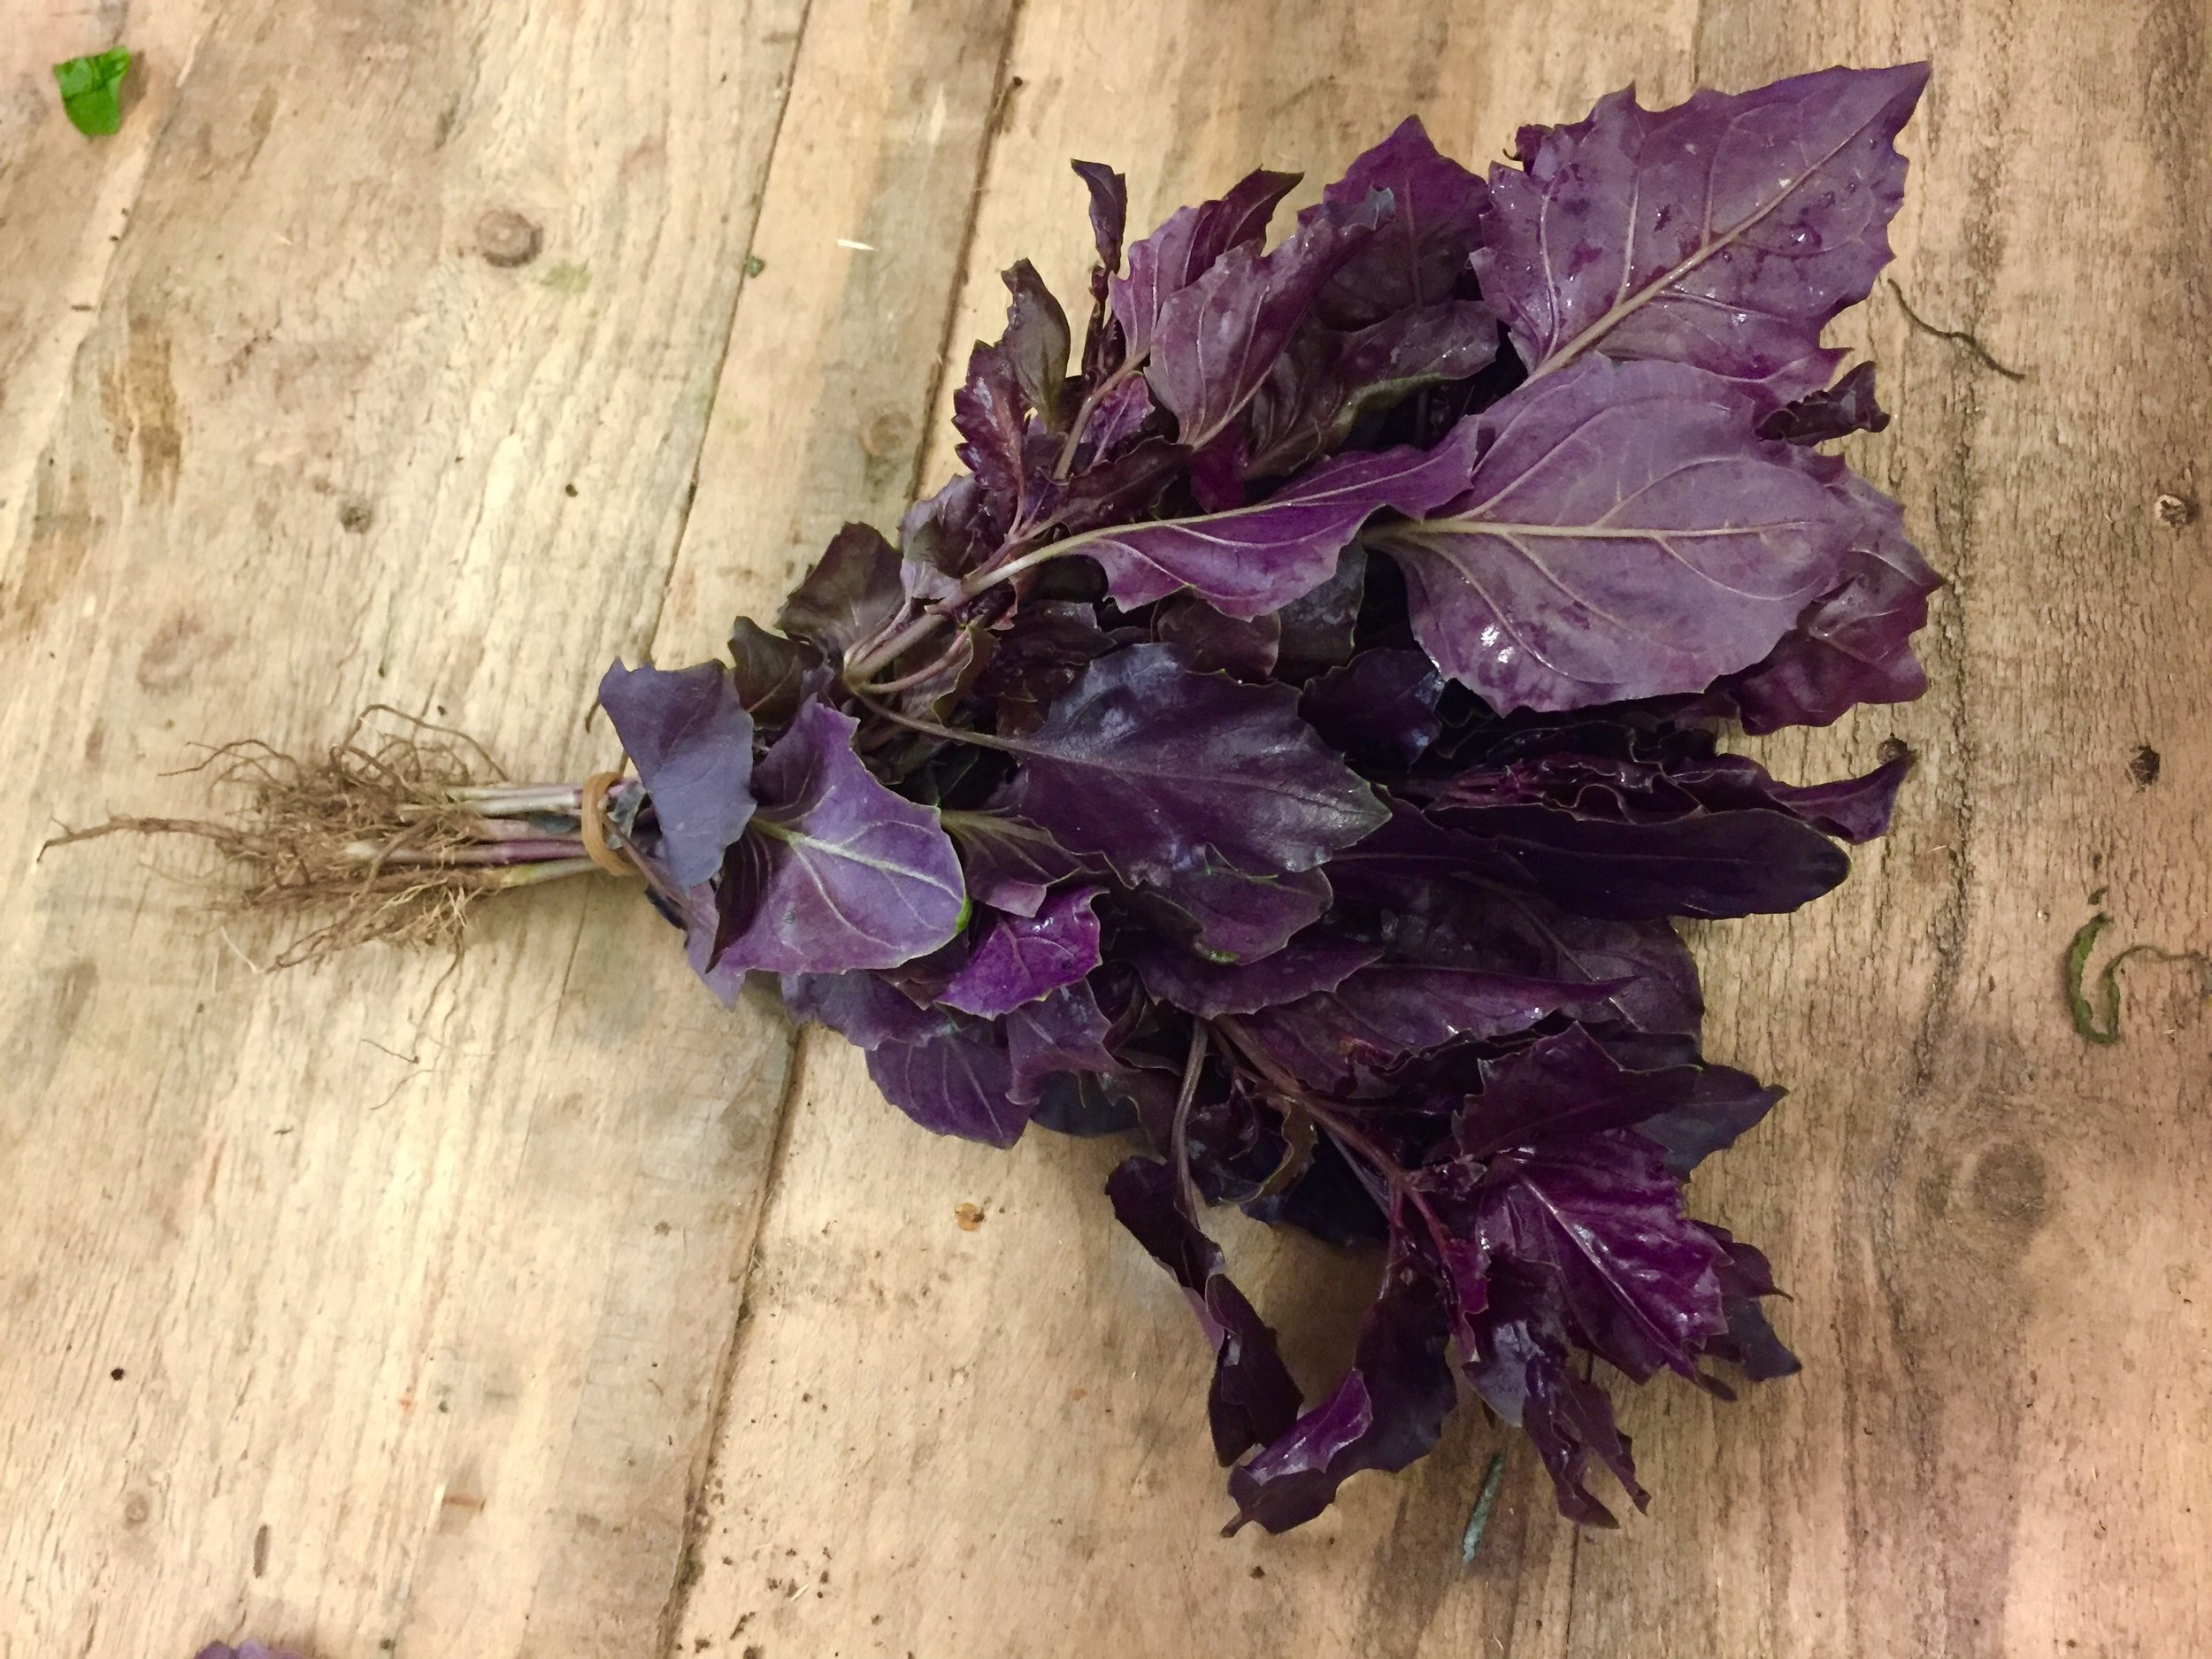 Purple Ligurian Basil            Photo ©Puntarelle&Co Ltd    In the first week of   JUNE , as I write, this is what stands out for us on the shelves of  Puntarelle & Co :  Several varieties of sun-ripened Italian  Tomatoes  along with flat, pink  Cipollini Onions  which roast so well, great quality new season  Garlic  for keeping.    Italian  Borlotti Beans ,  Fennel  and  Courgettes  –  Round,   Romano, Yellow  and  Green .  A number of forms of Italian  Cicoria  and  Aubergines  and both  Green  and  Purple Ligurian Basil .  We also have the first supply of  Tenerumi  (leaves of the Cucuzza Zucchini) from Italy for pasta and soups.  English new season produce is becoming more available.  We have  Asparagus  from our Kent grower coming in at better prices now we are well into the season.  We have English  Watercress  direct from the grower,  Artichokes ,  Peas ,  Broad Beans ,  Cucumbers ,  Radishes ,  Spring Onions  ,   Spinach  and juicy  Kohlrabi .    Small red/yellow  Watermelons  and the large Greek variety liked so much by our customers.    The special thin-skinned, orange-fleshed Melons from Italy now join the  Cantaloupe Melons .  We have new season  Sicilian Green Lemons , prized in particular for their highly fragrant zest.  We also have the first large, plump  Green Figs  from Italy.  There are various vibrant  Fresh Herbs  along with English  Strawberries, Raspberries  and the first of the  Gooseberries.   Italian  Peaches ,  Nectarines  and  Apricots  are already plentiful and French  Cherries  are starting to arrive.